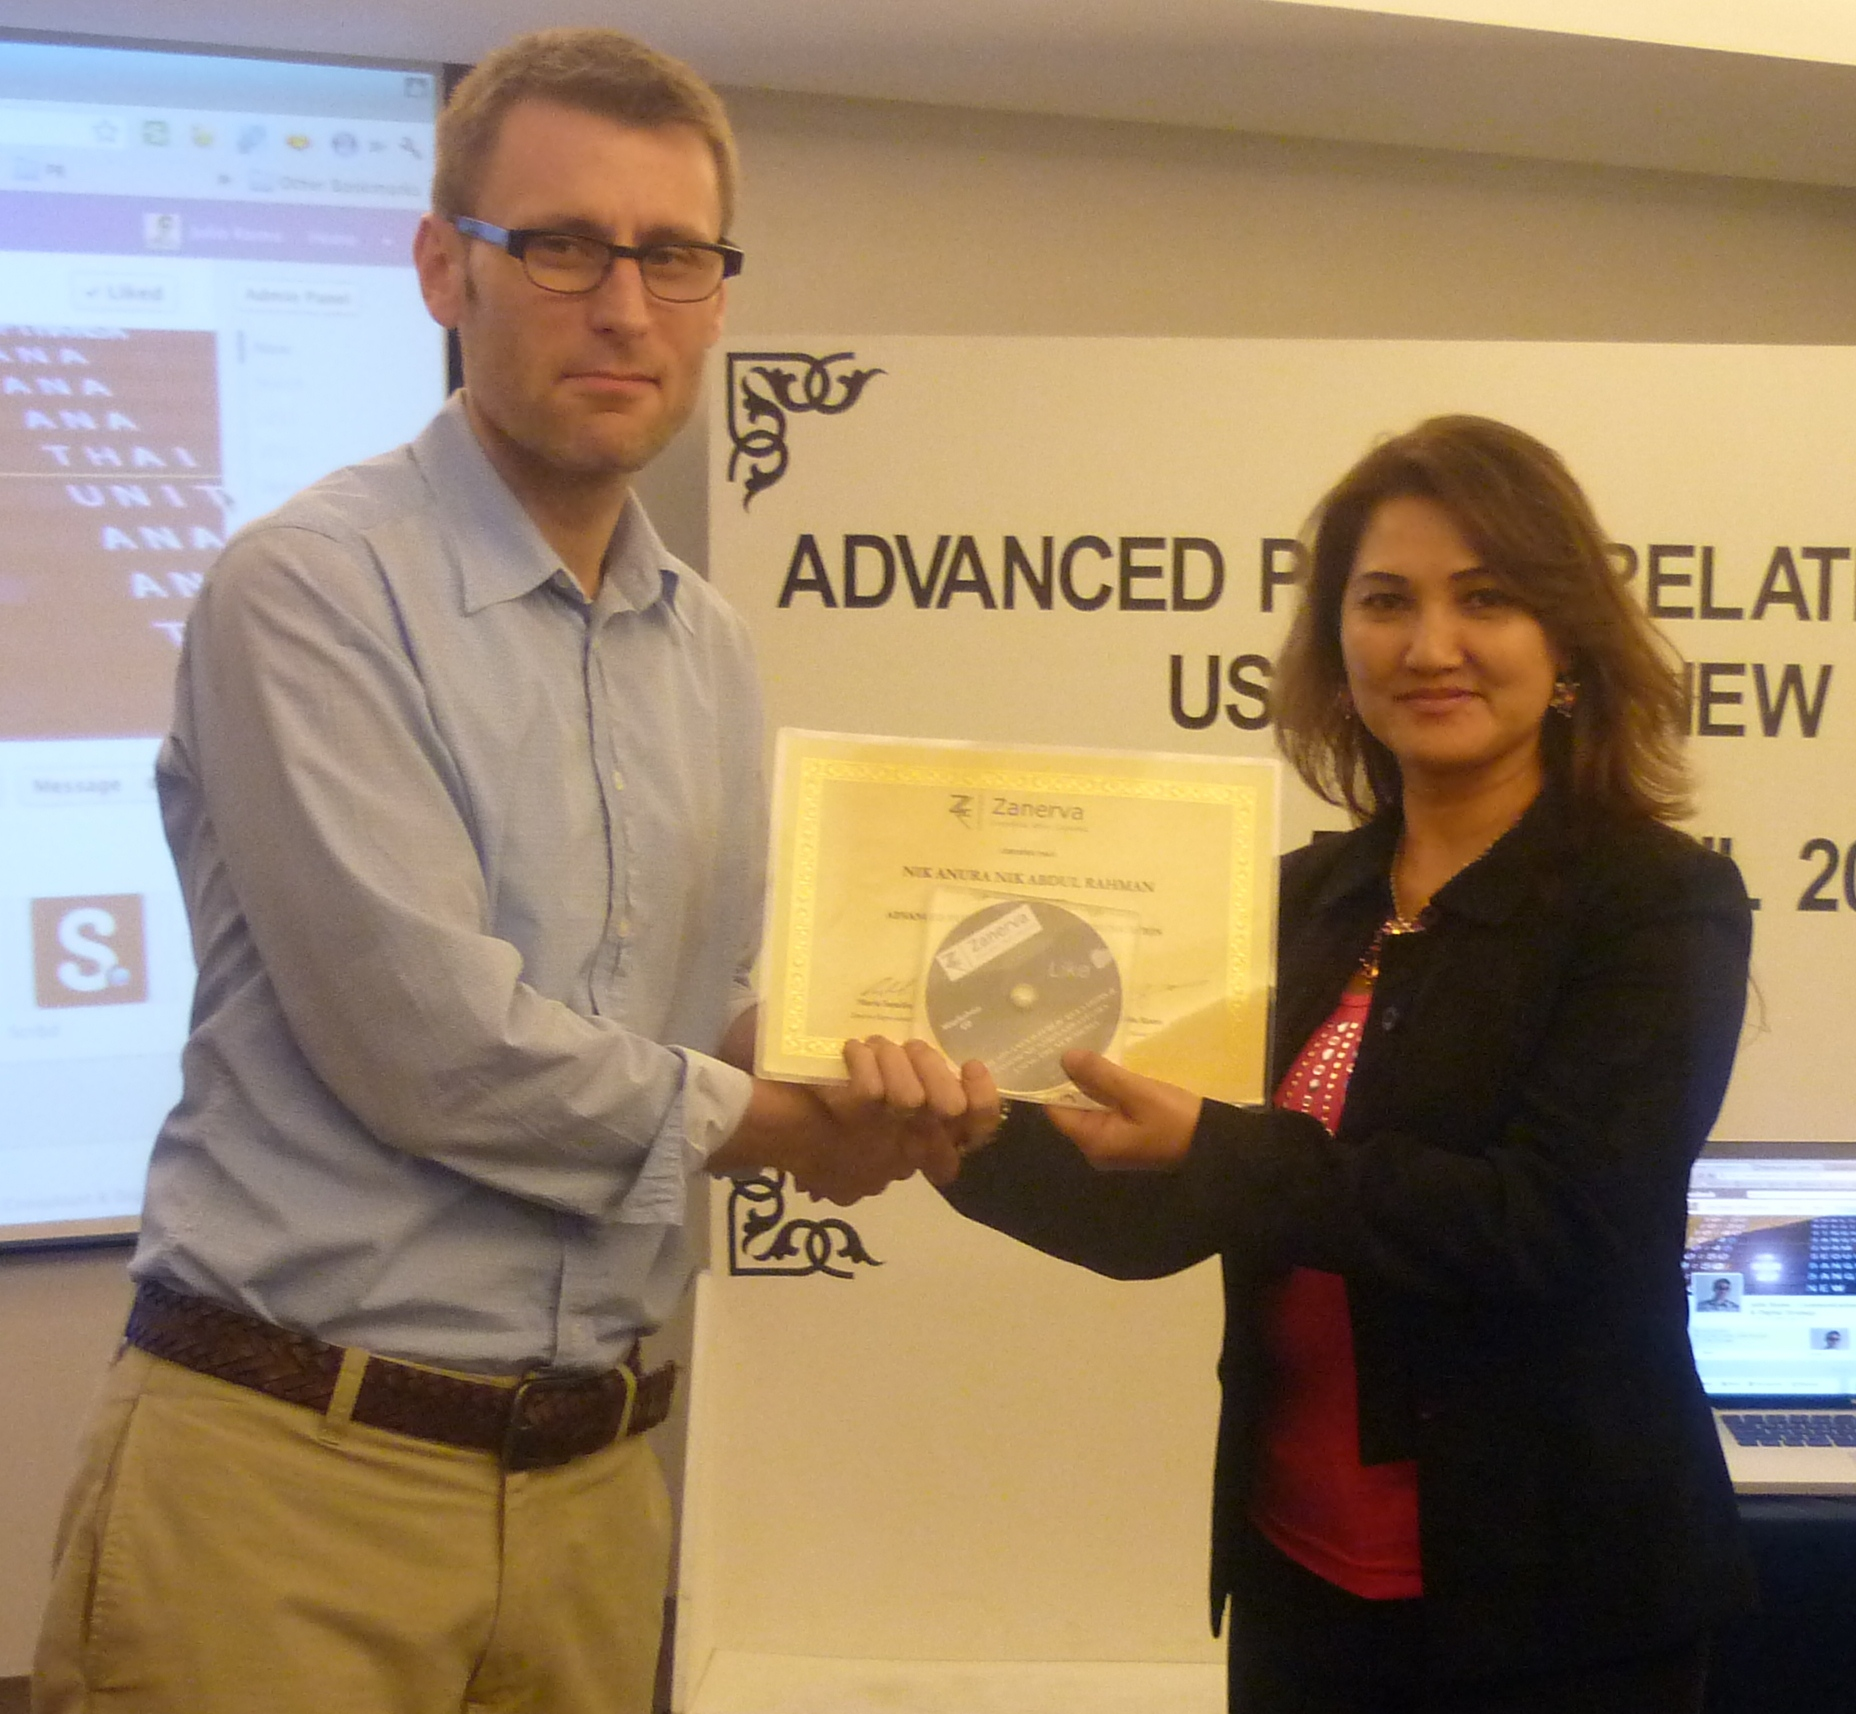 Nik Anura Nik Abdul Rahman, Assistant Manager for Corporate Communications of Utusan Melayu Bhd  receiving her certificate of workshop participation from Julio Romo (Zanerva Partner Consultant) for attending the Advanced Public Relations & Communication Strategies Using the New Media in Kuala Lumpur